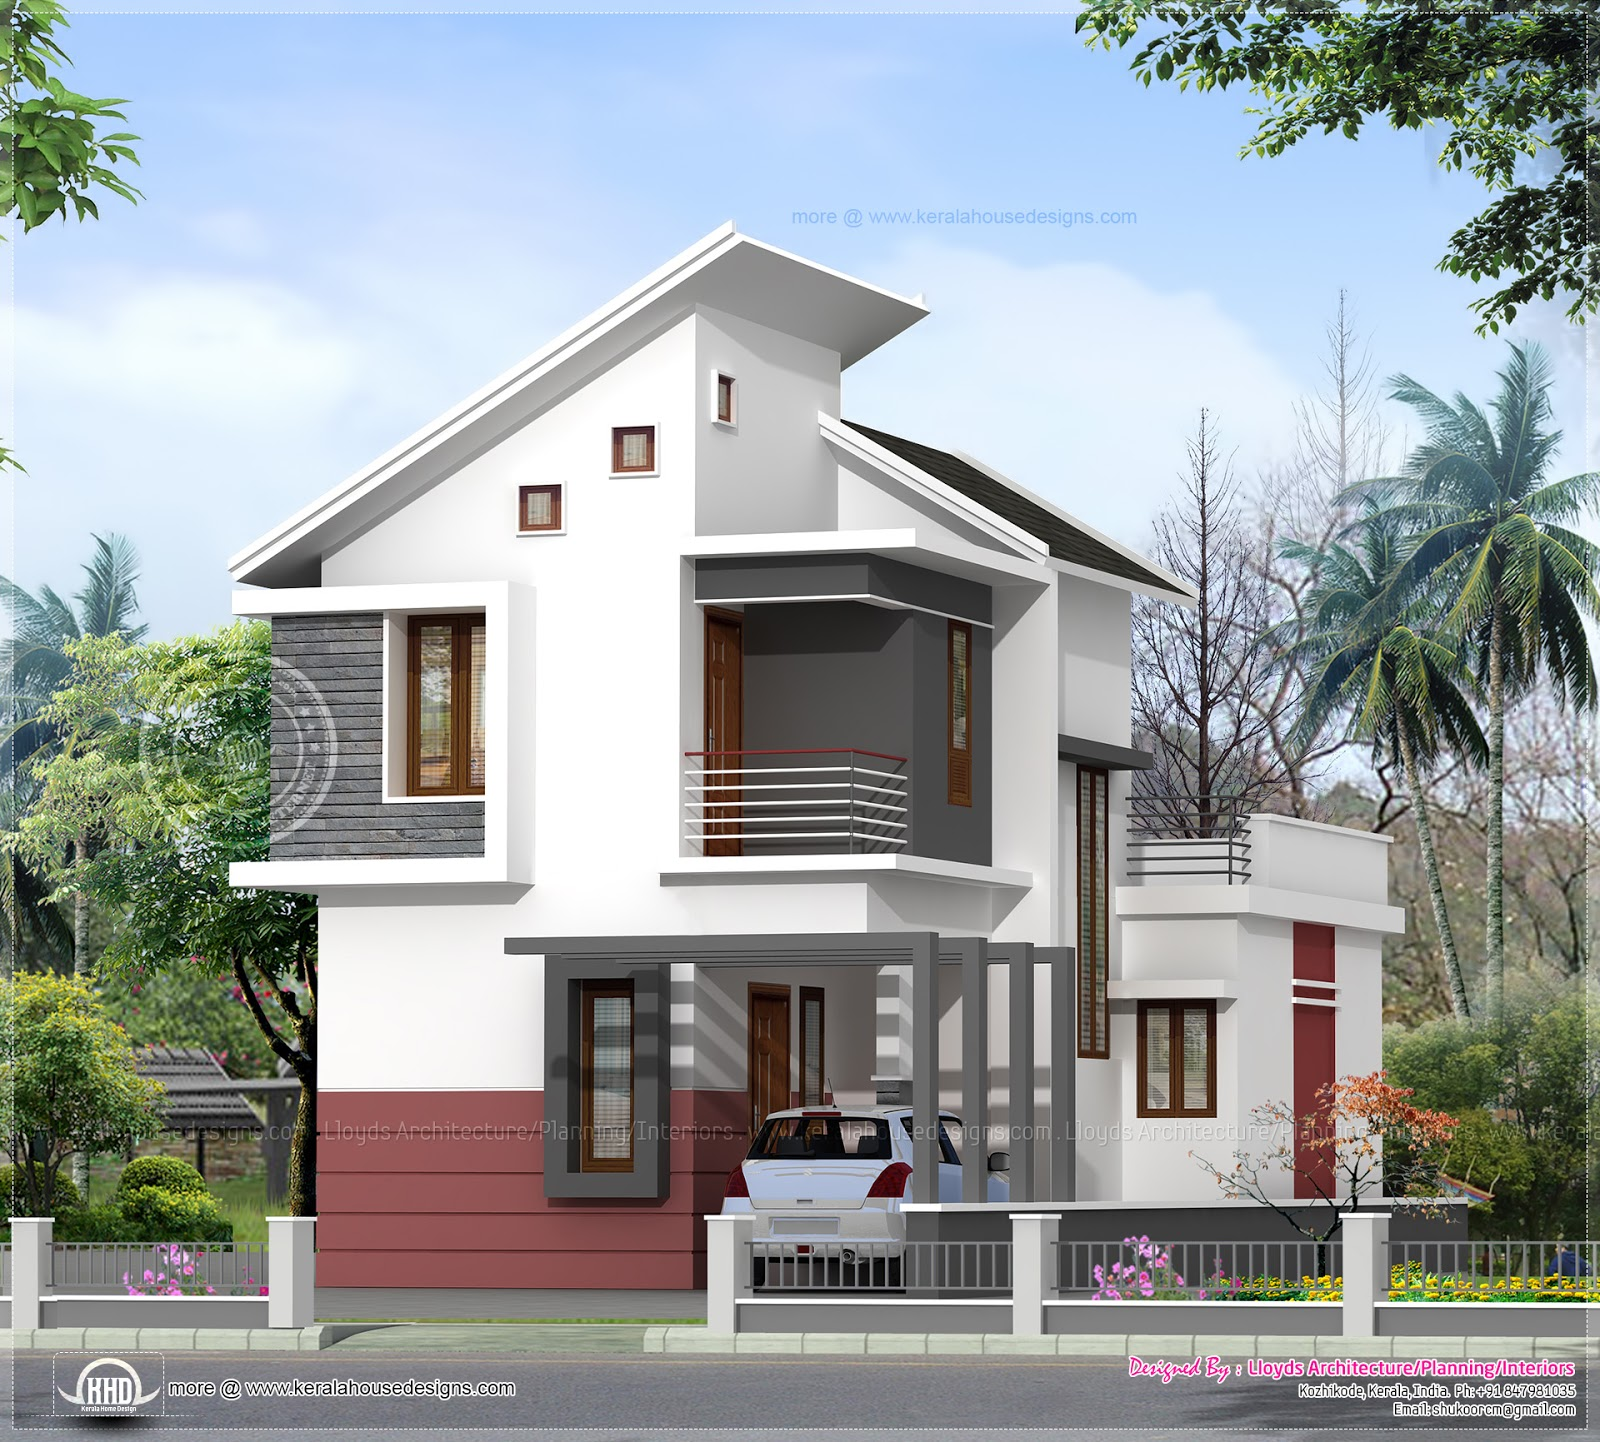 1197 sq ft 3 bedroom villa in 3 cents plot style house for Small house images in kerala